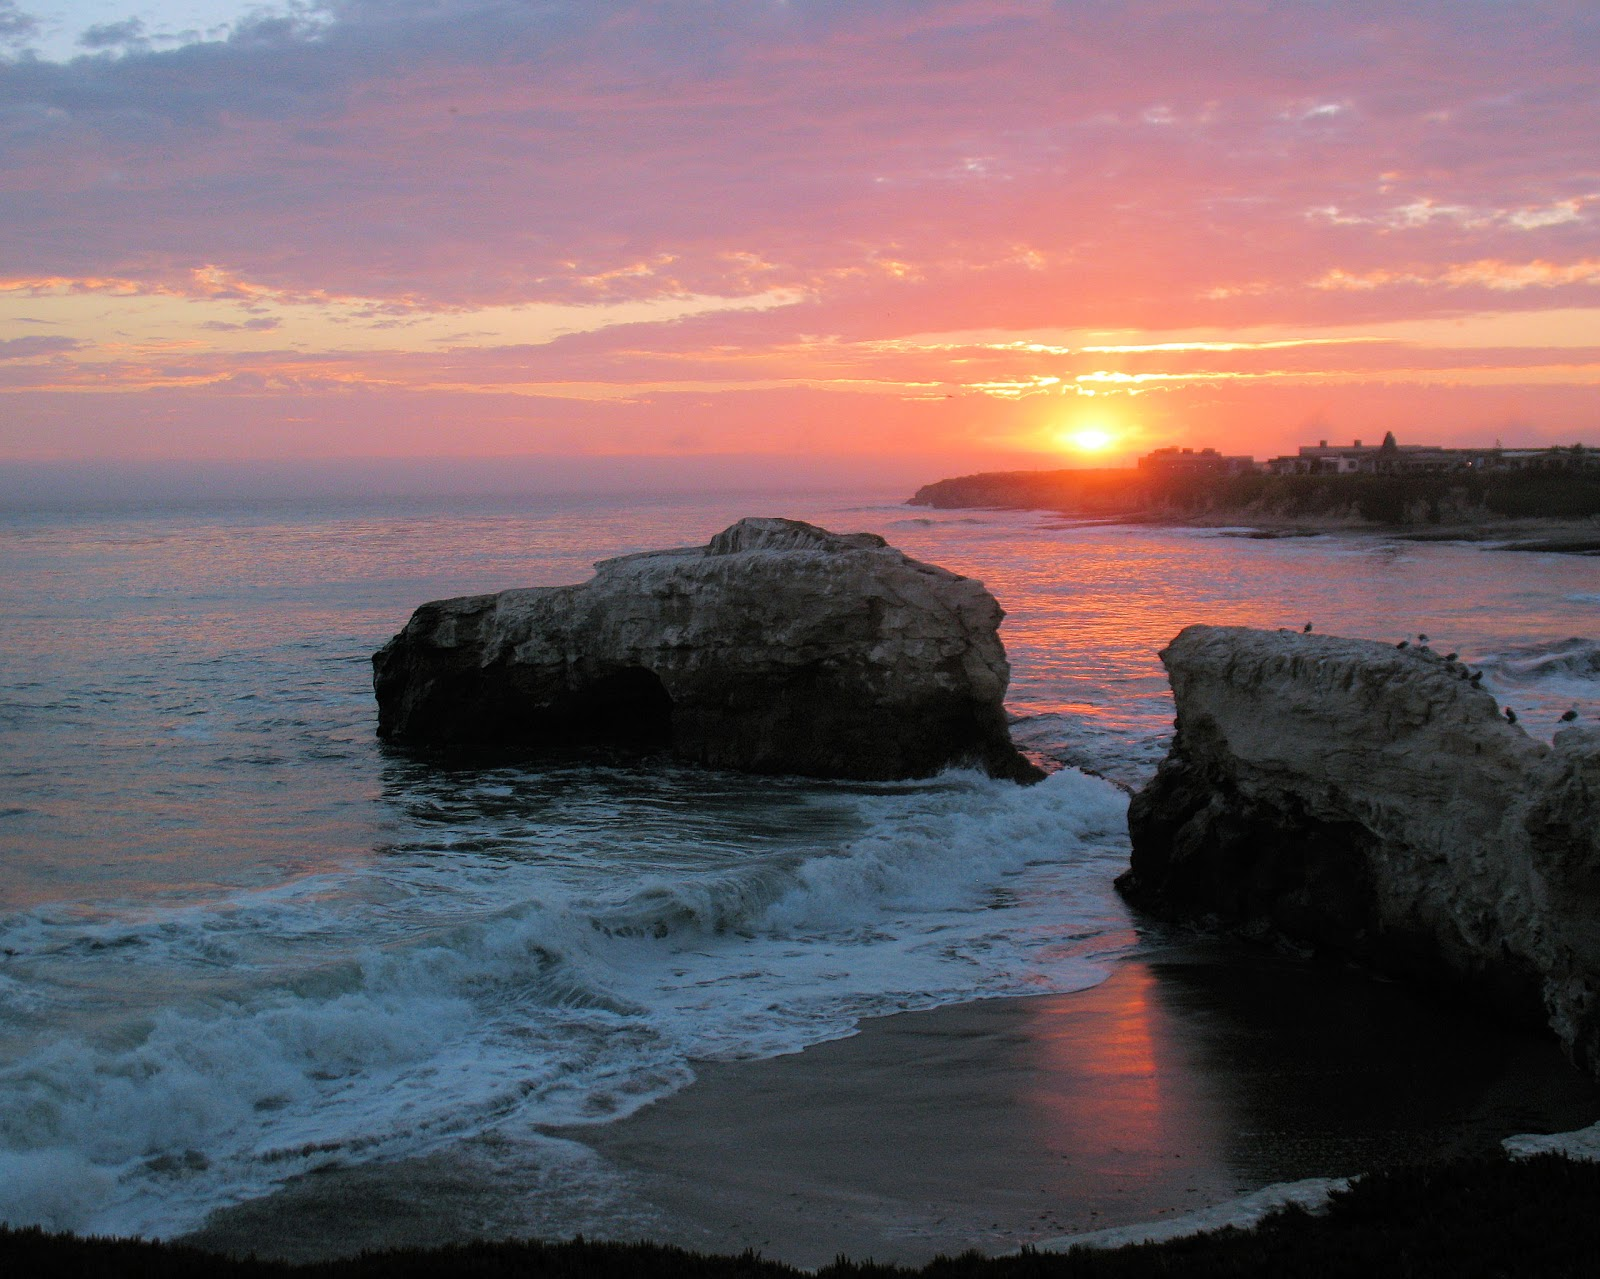 California Beach Beautiful Sunset Wallpaper Beach Wallpaper